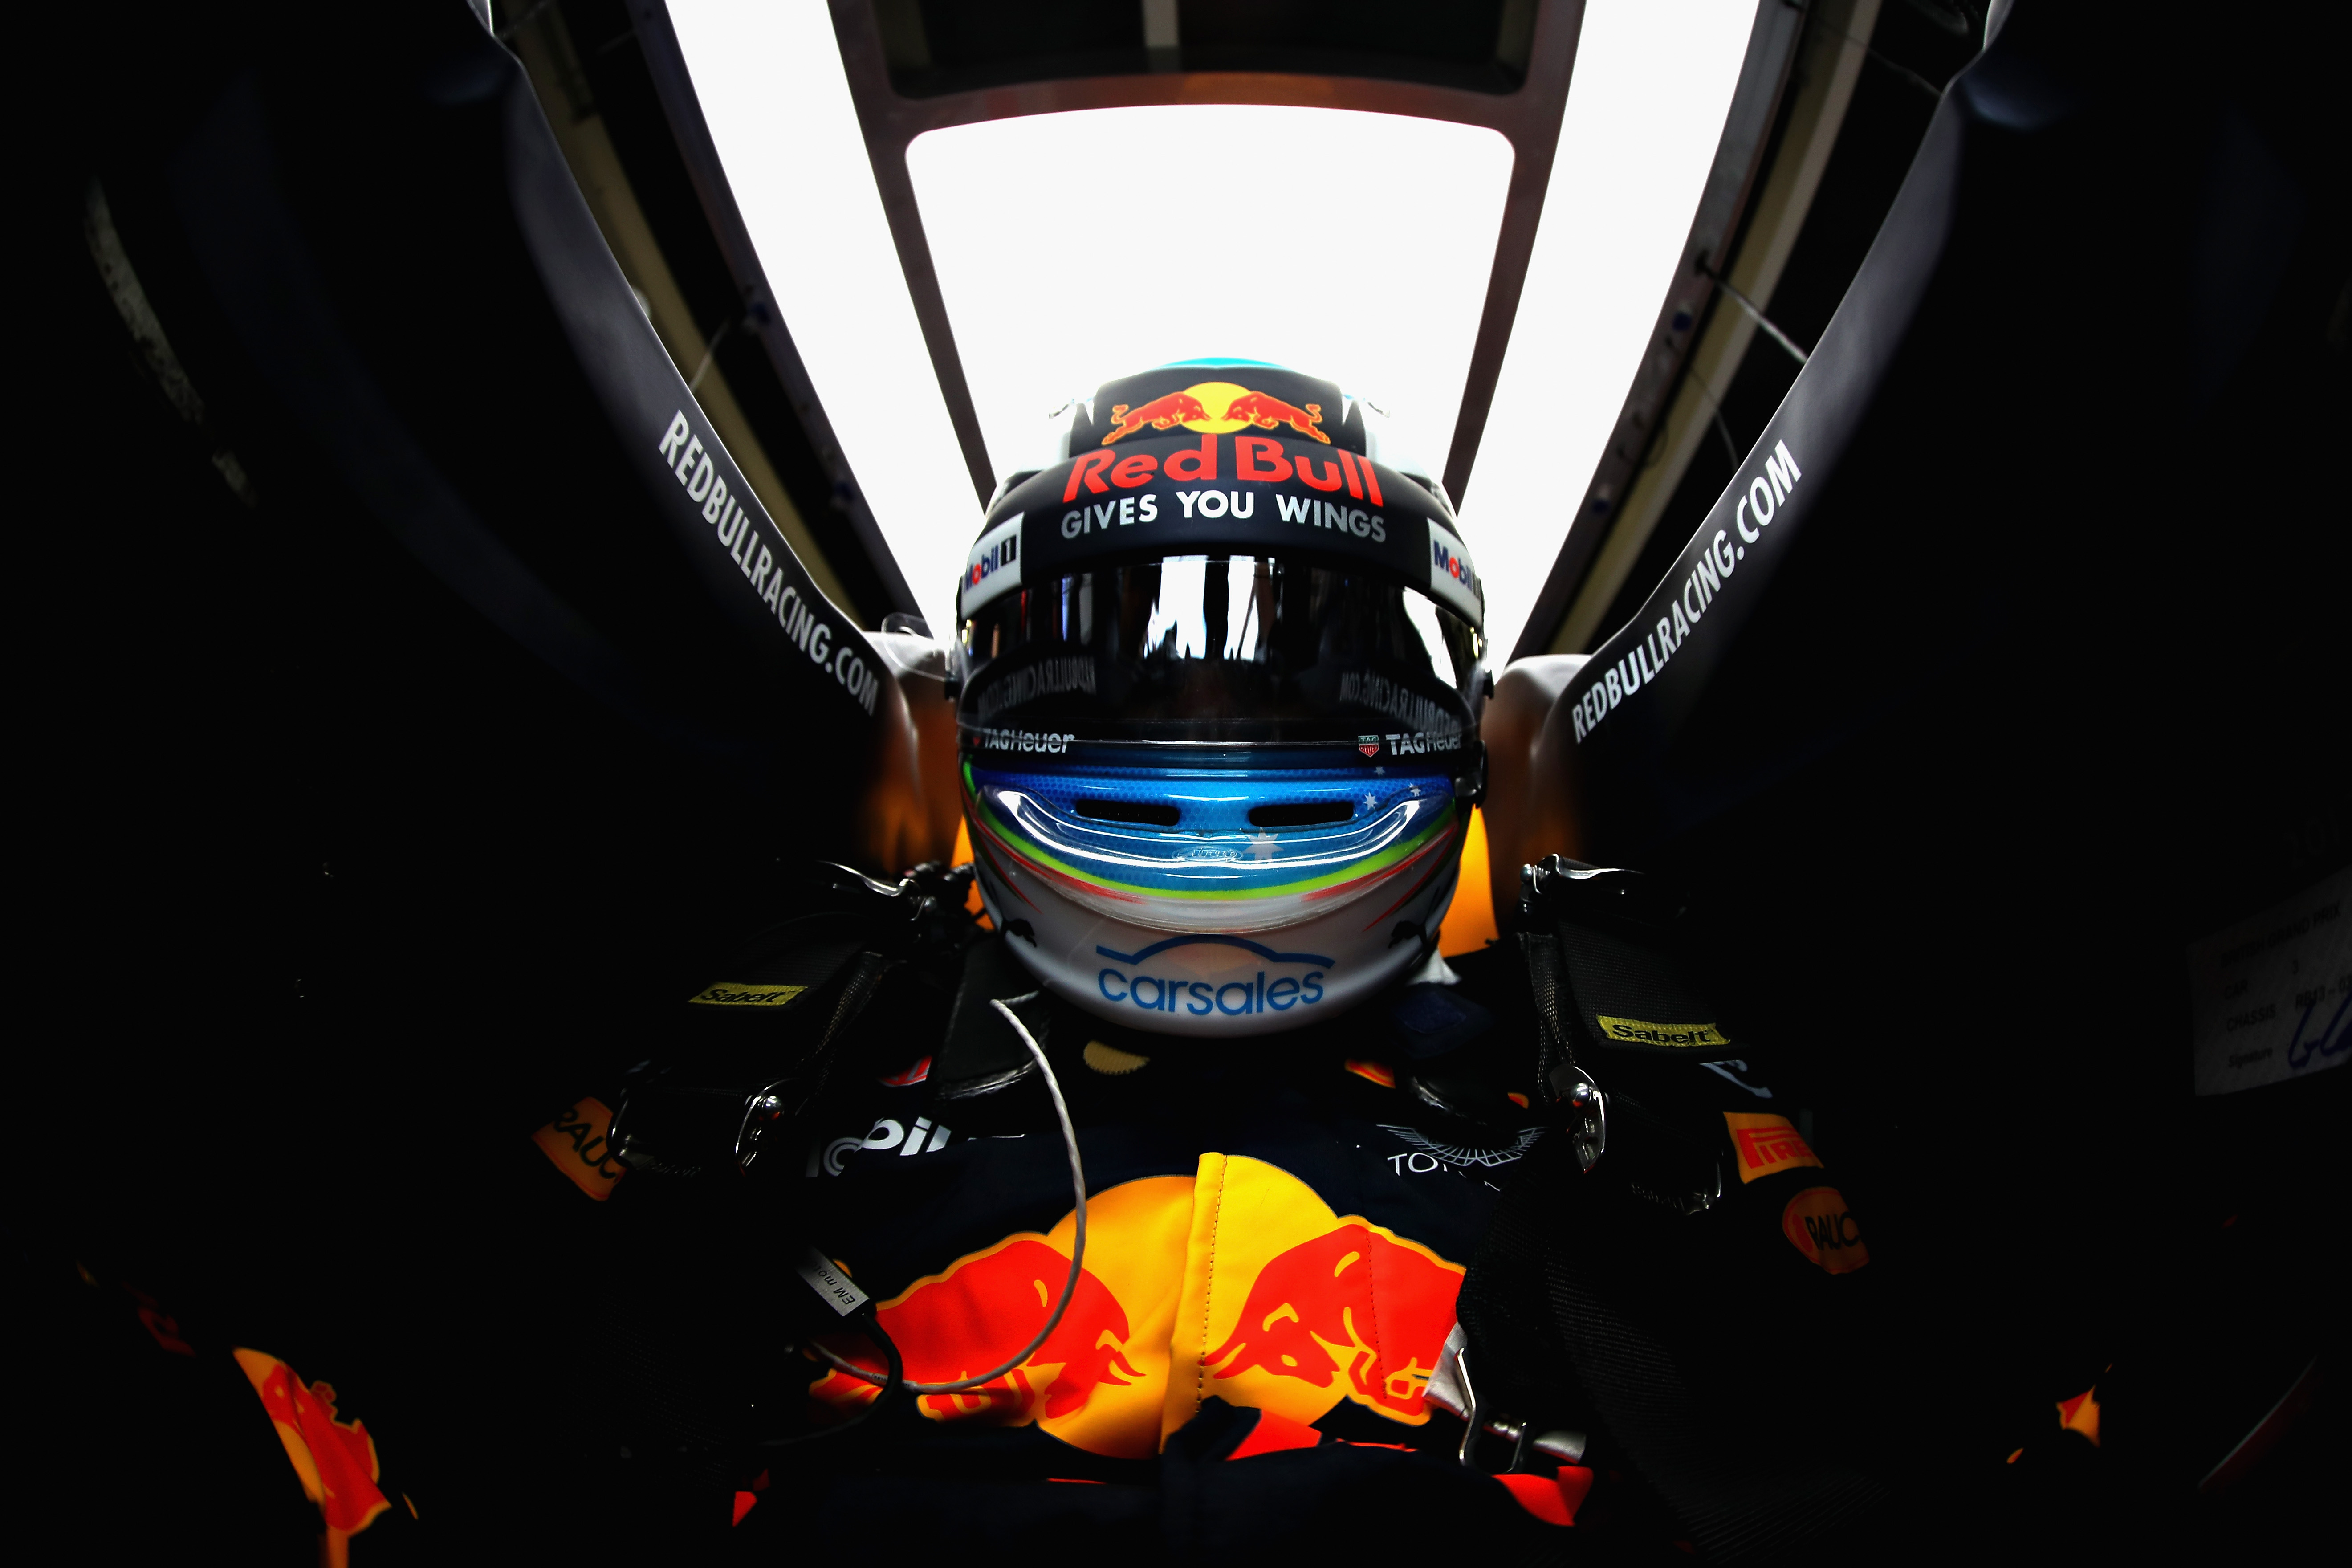 NORTHAMPTON, ENGLAND - JULY 14: Daniel Ricciardo of Australia and Red Bull Racing prepares to drive during practice for the Formula One Grand Prix of Great Britain at Silverstone on July 14, 2017 in Northampton, England. Photo shot by Daniel Ricciardo from inside his car (Photo by Mark Thompson/Getty Images)